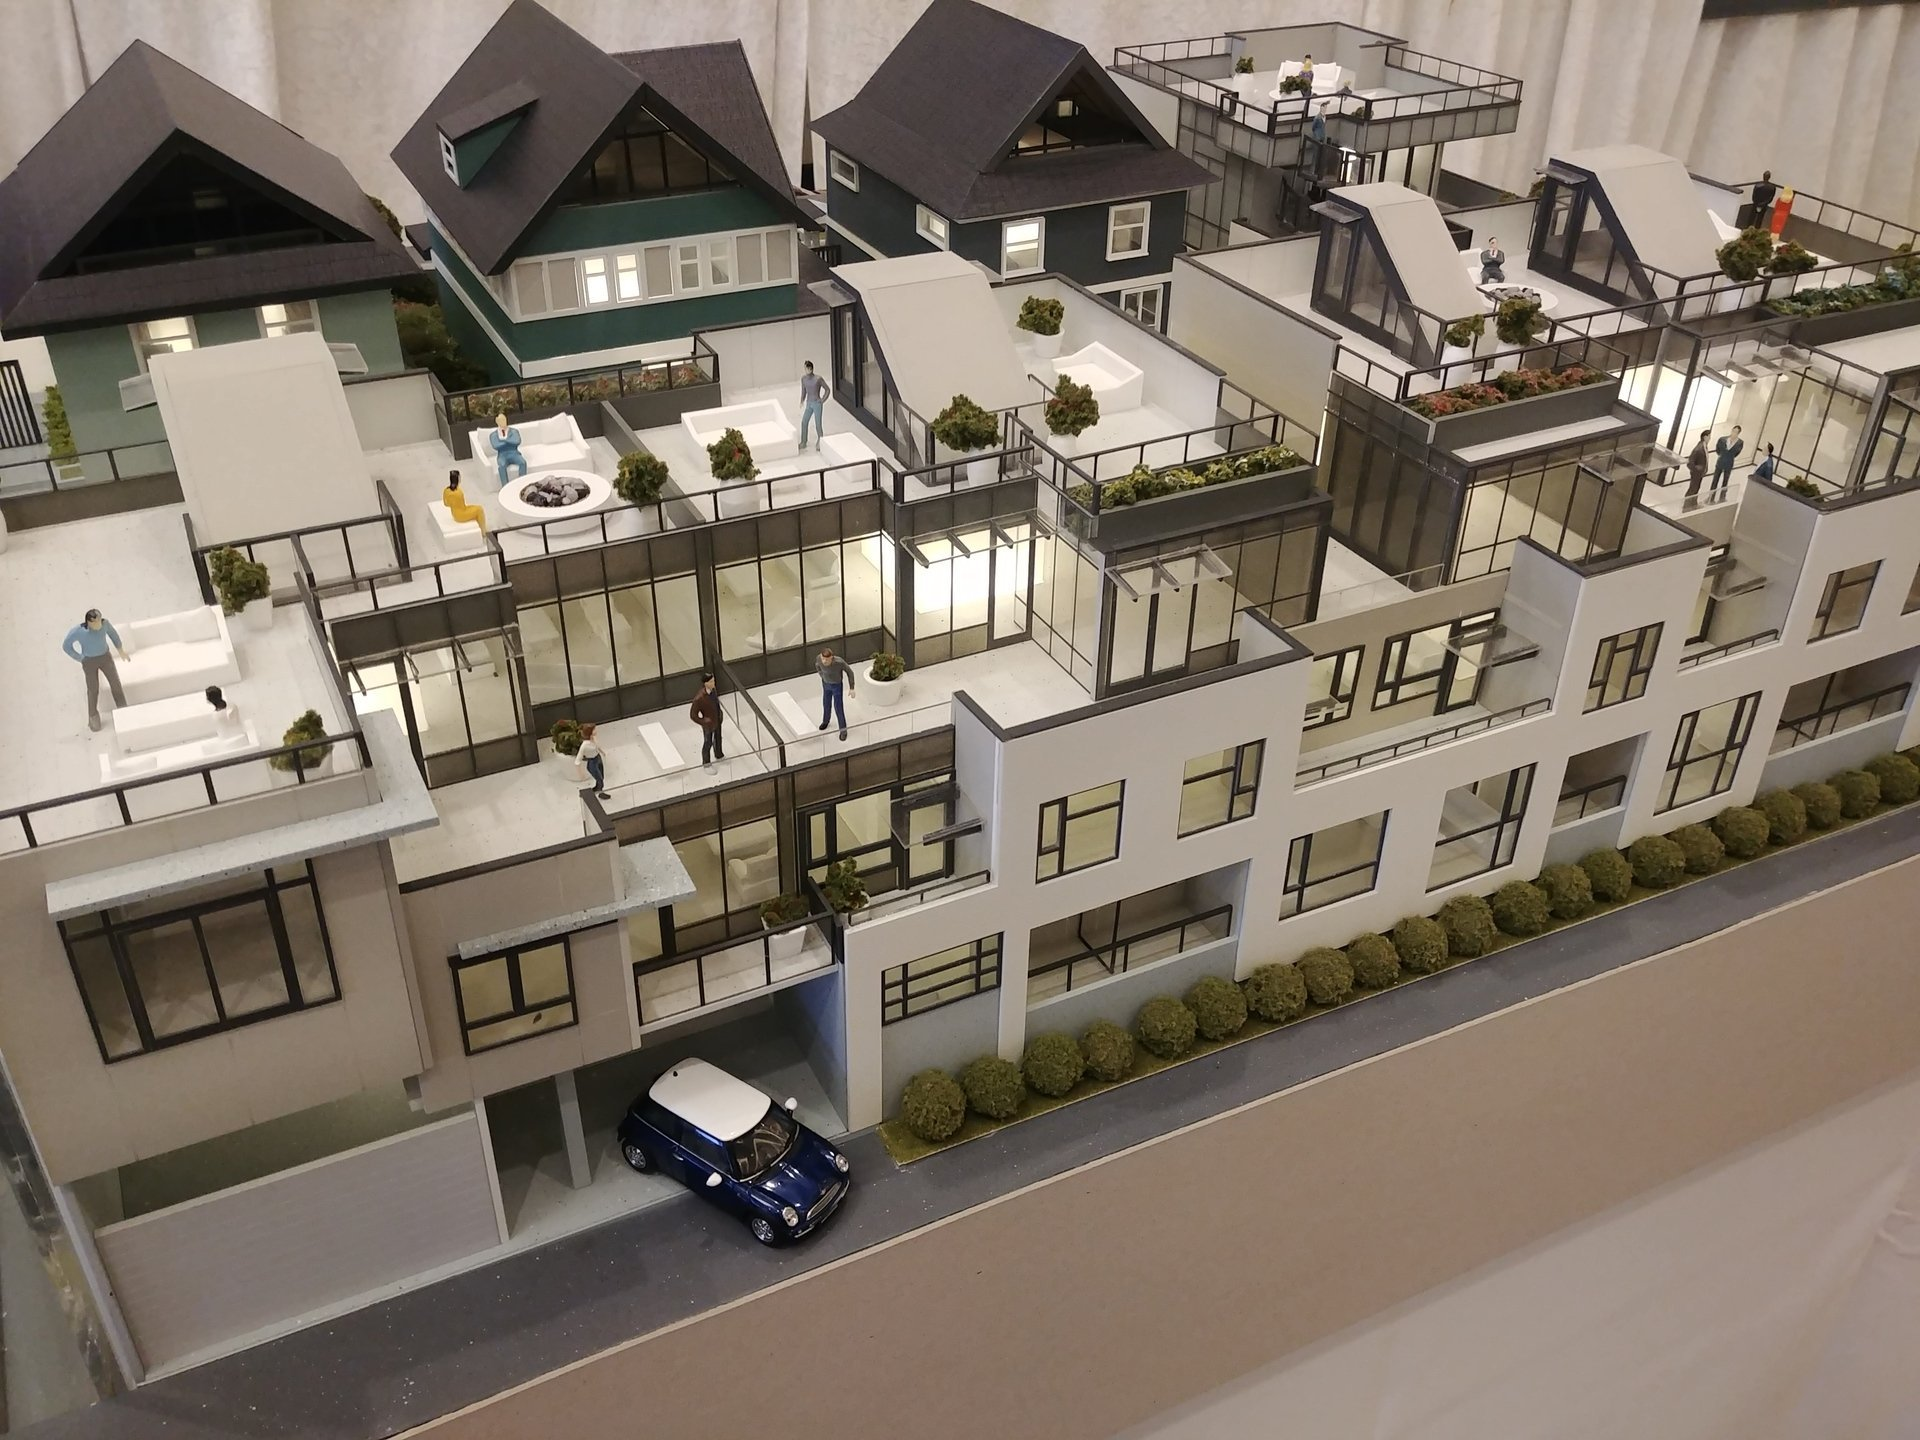 Joie - 1269 West 8th Ave - Rendering!